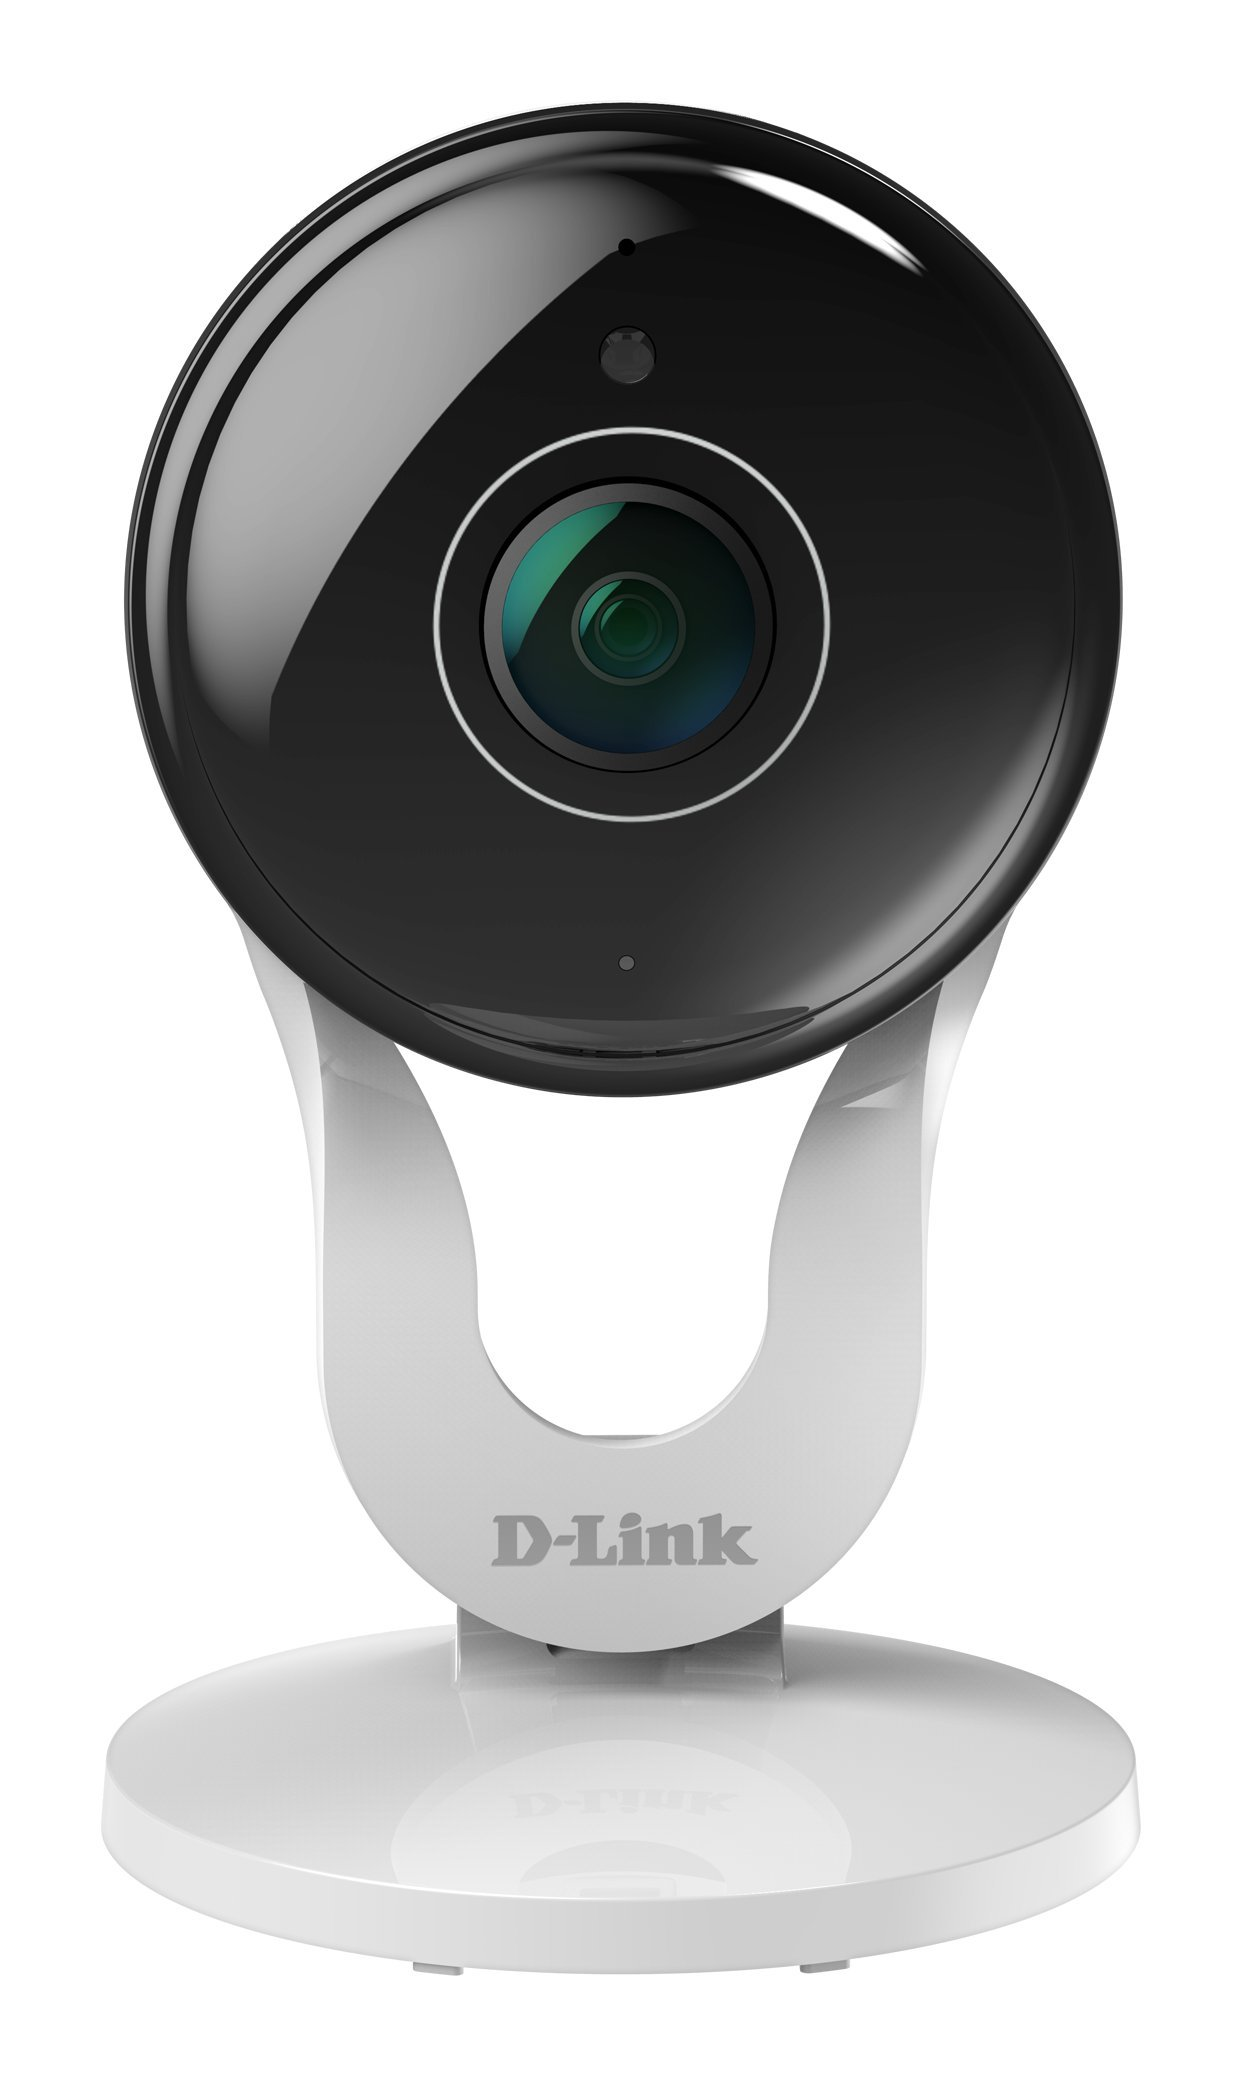 D-Link Full HD 1080p WiFi Indoor Security Camera/Cloud Recording, 2-way Audio, Motion Detection & Night Vision/ Amazon Alexa (Echo Show/Echo...